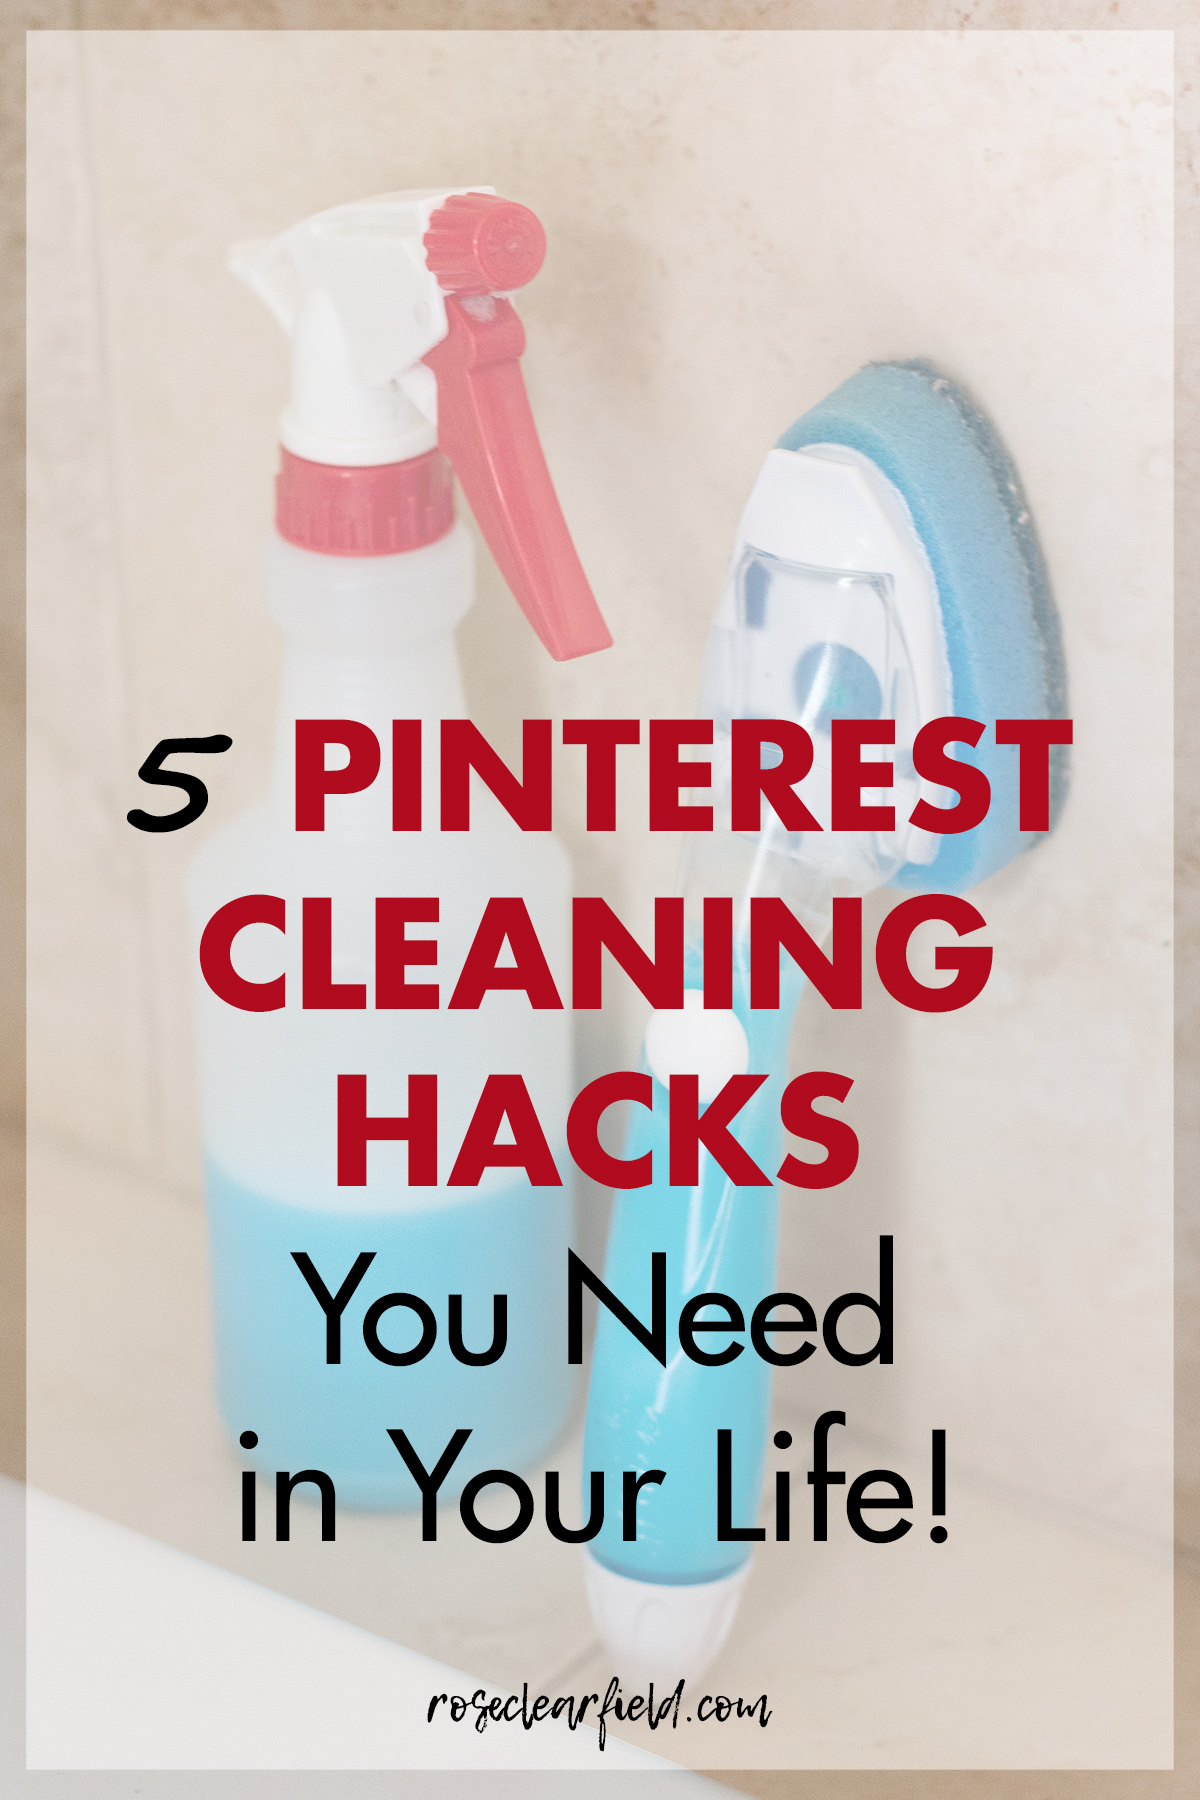 5 Pinterest Cleaning Hacks You Need in Your Life